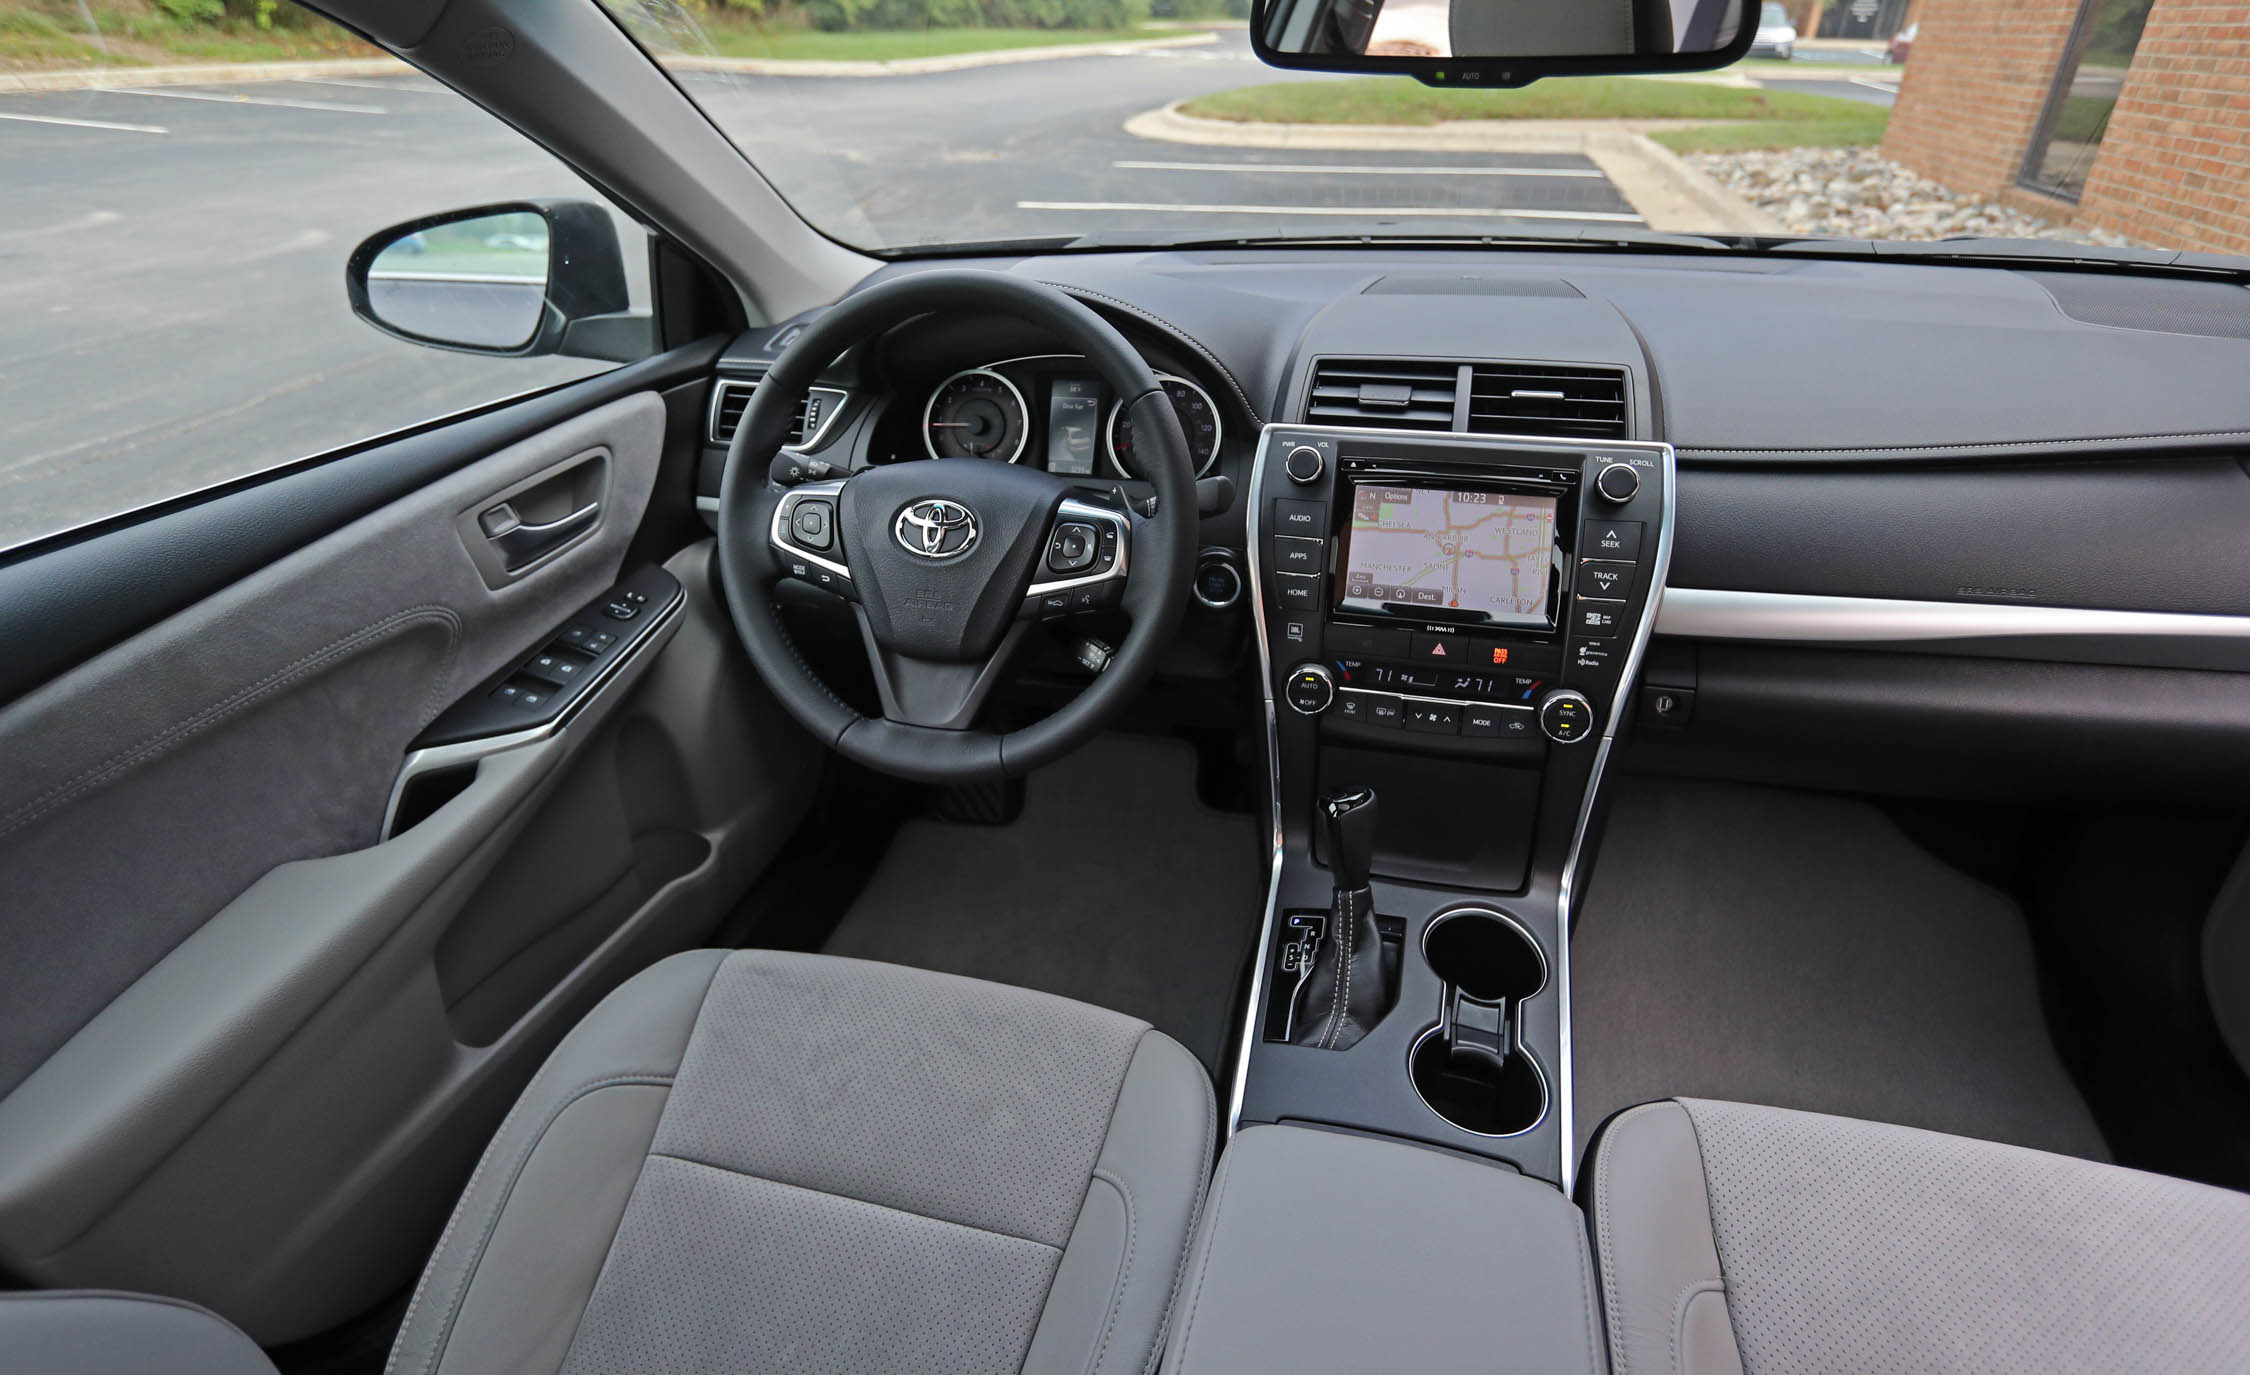 2017 Camry Interior Pictures | Billingsblessingbags.org